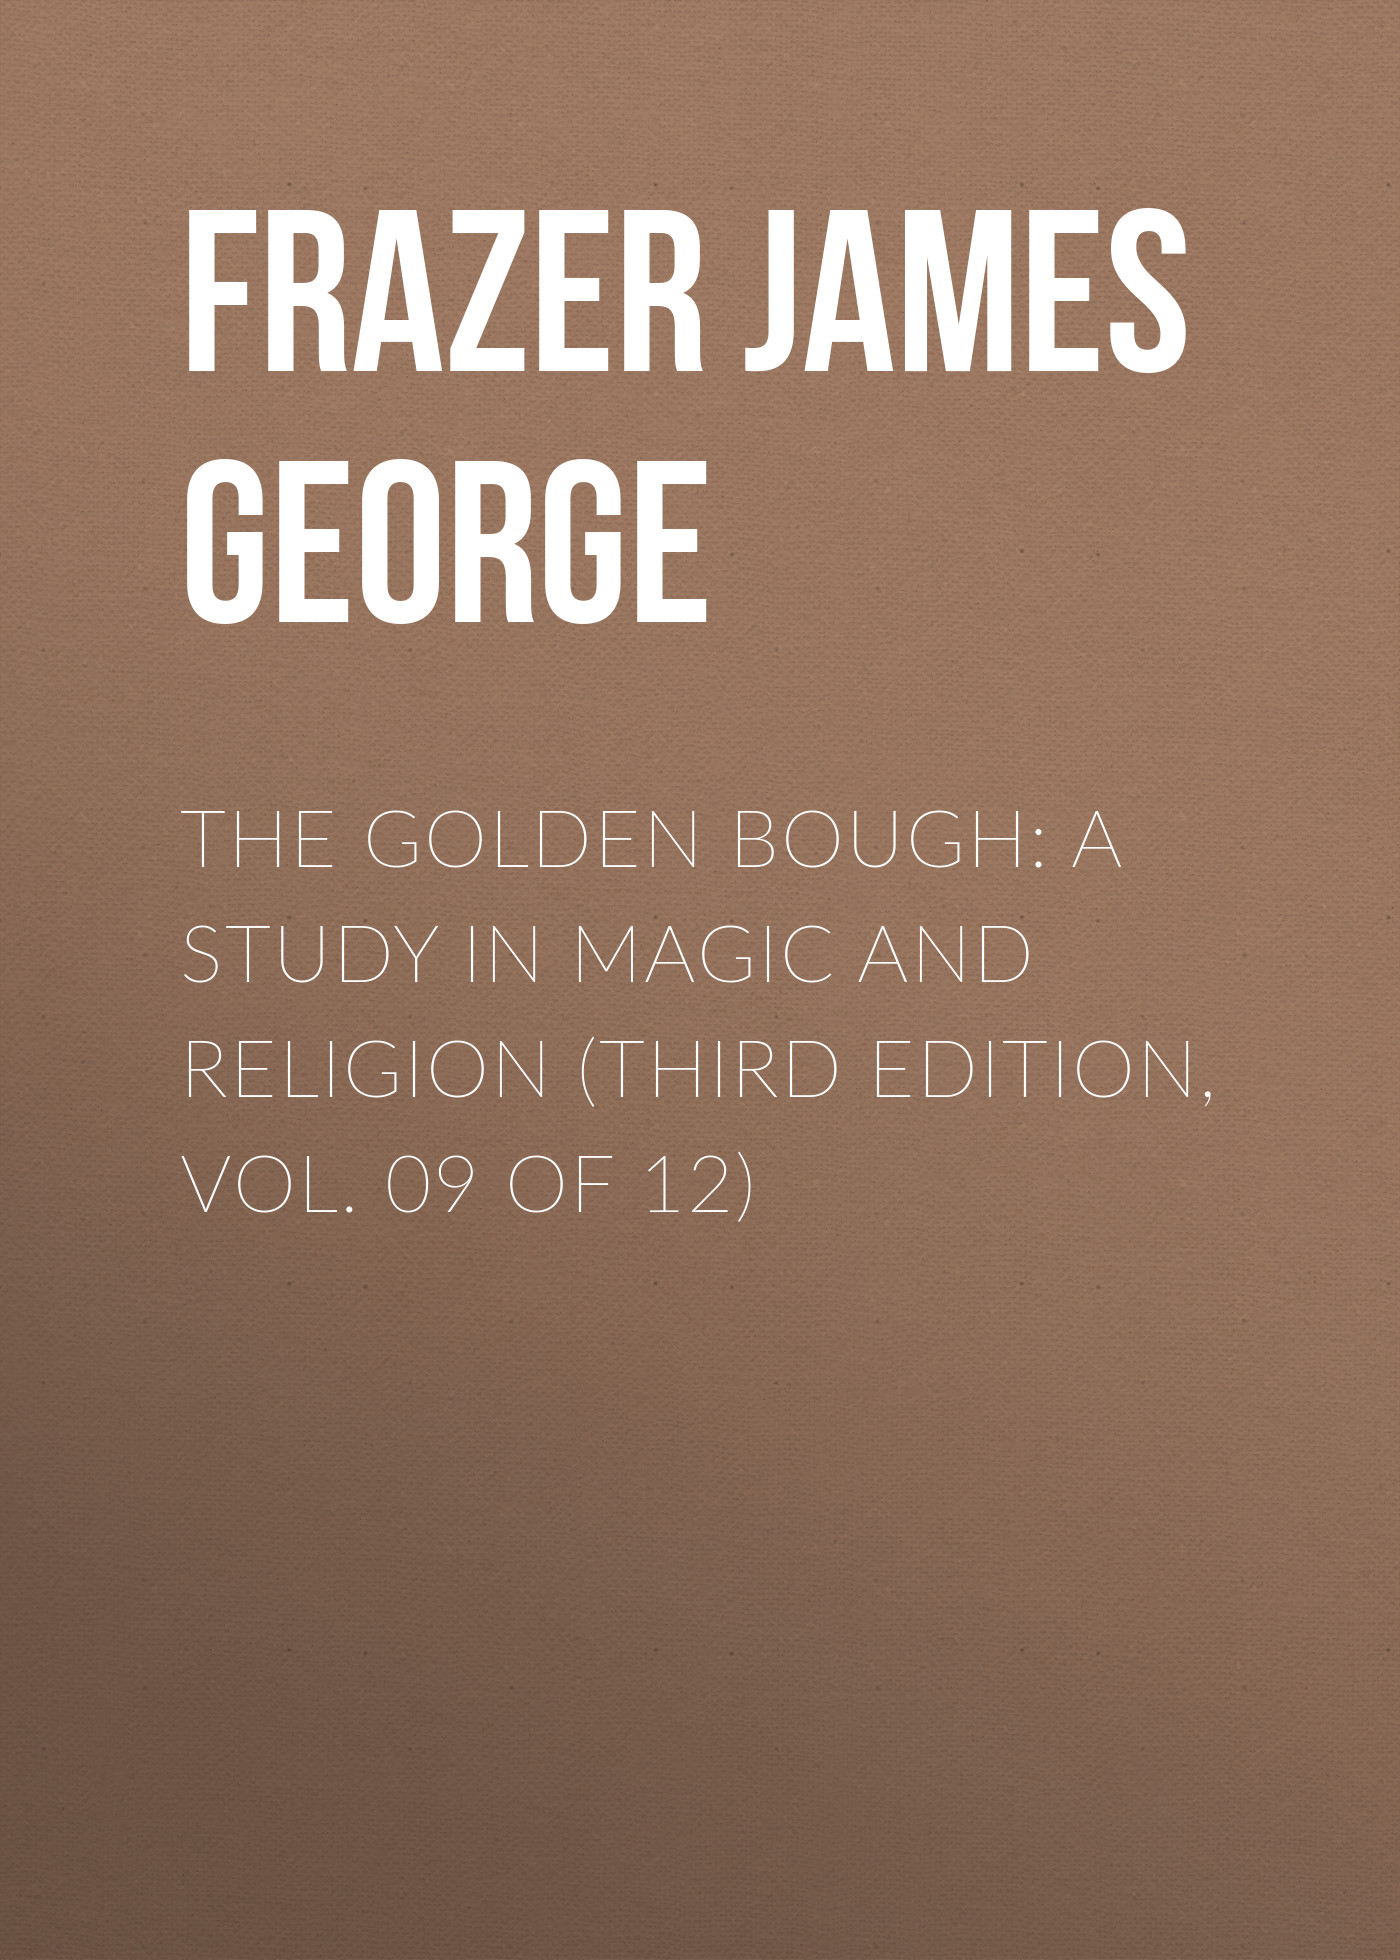 Frazer James George The Golden Bough: A Study in Magic and Religion (Third Edition, Vol. 09 of 12)